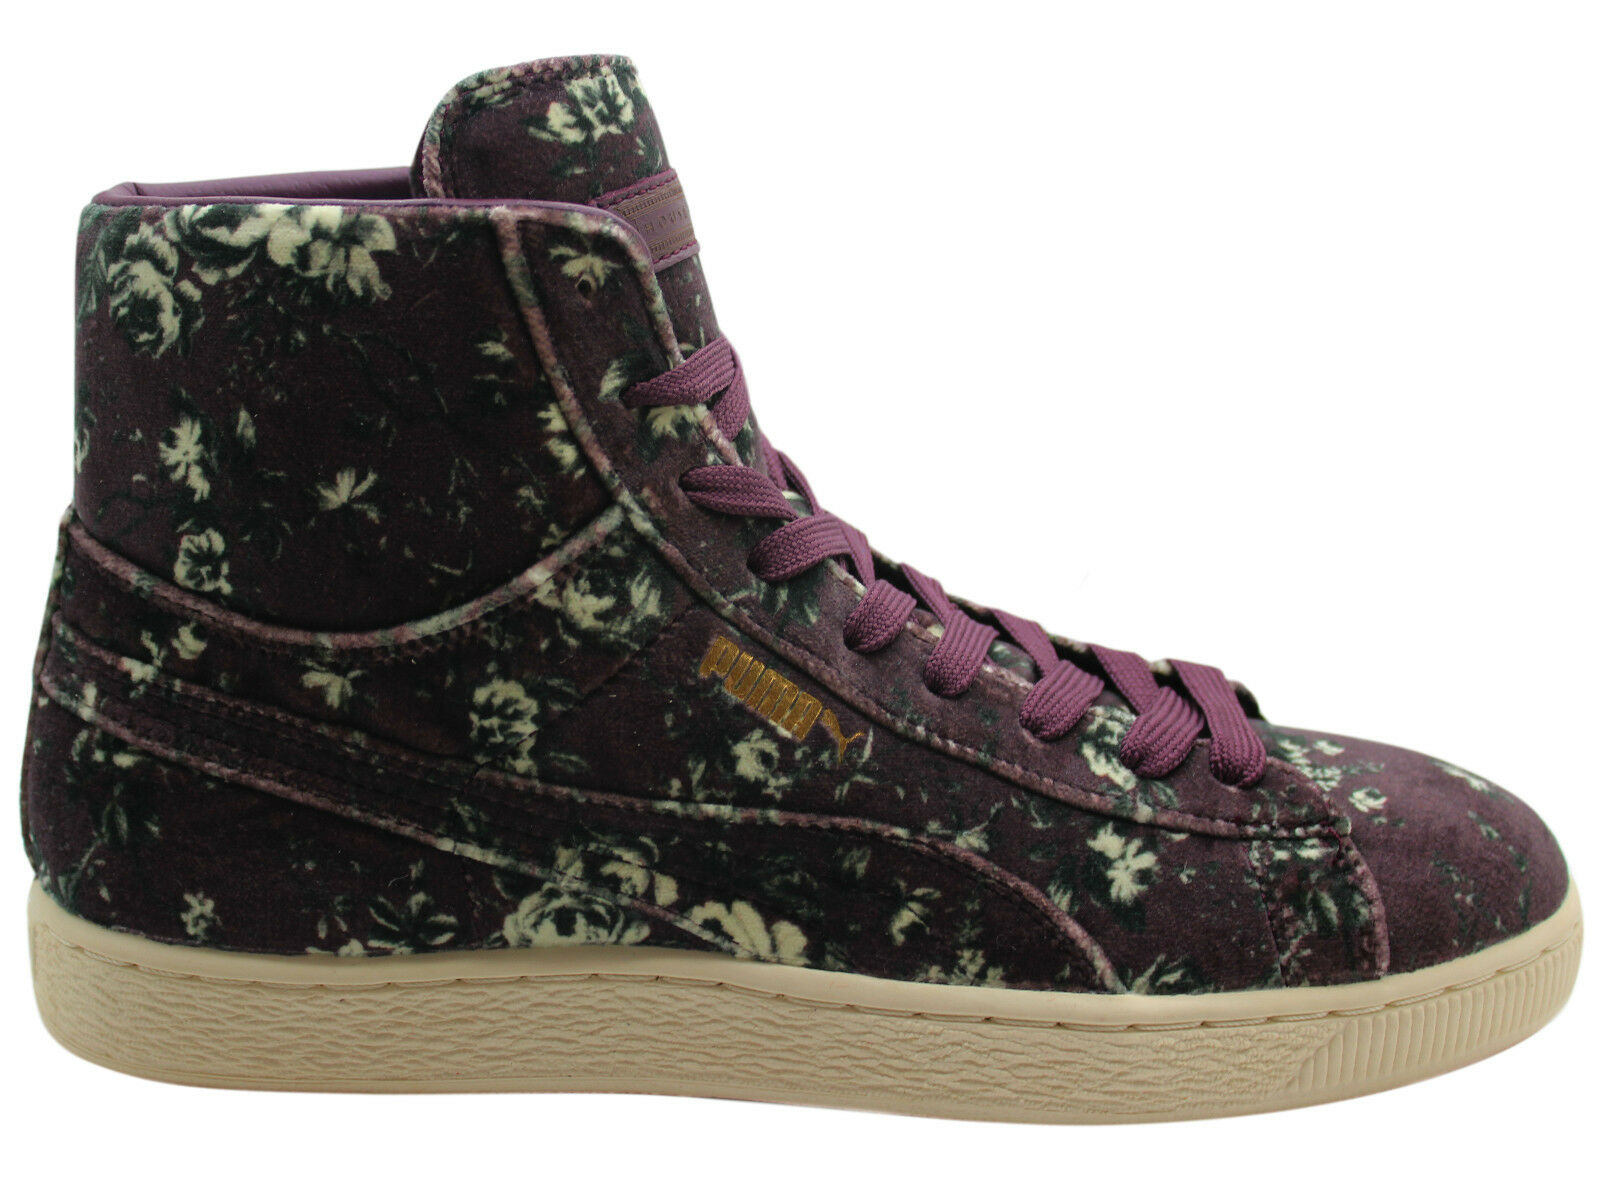 Puma Basket Classic Mid X House Of Hackney Mens Trainers Hi Top 357529 01 D46 Comfortable and good-looking